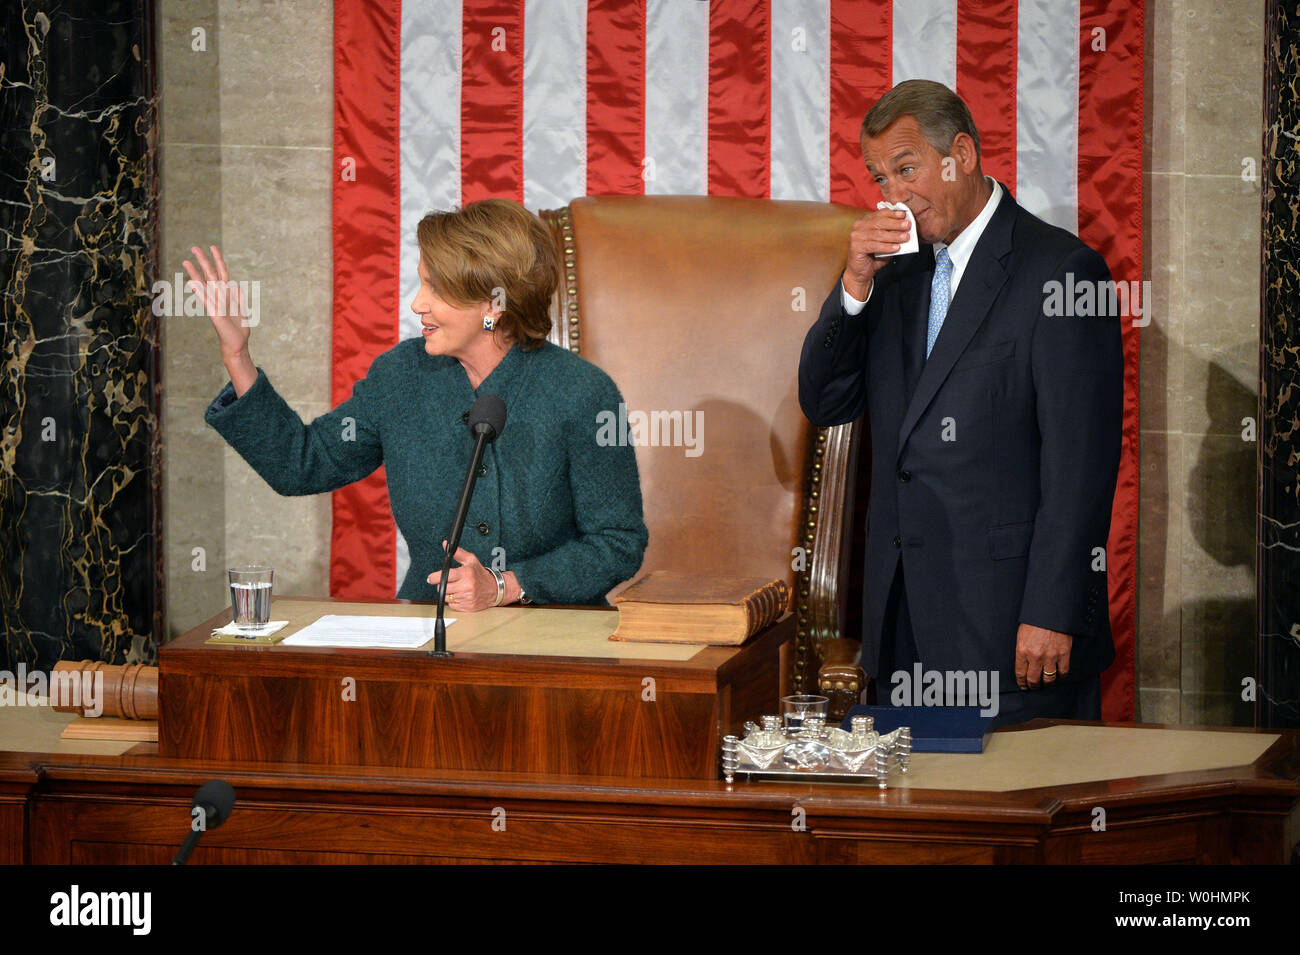 House Minority Leader Nancy Pelosi, D-CA, speaks as Speaker of the House John Boehner, R-OH, reacts, after he was reelected as the Speaker during the first day of the 114th Congress, inside the House Chambers of the U.S. Capitol Building in Washington, D.C. on January 6, 2015. Photo by Kevin Dietsch/UPI - Stock Image